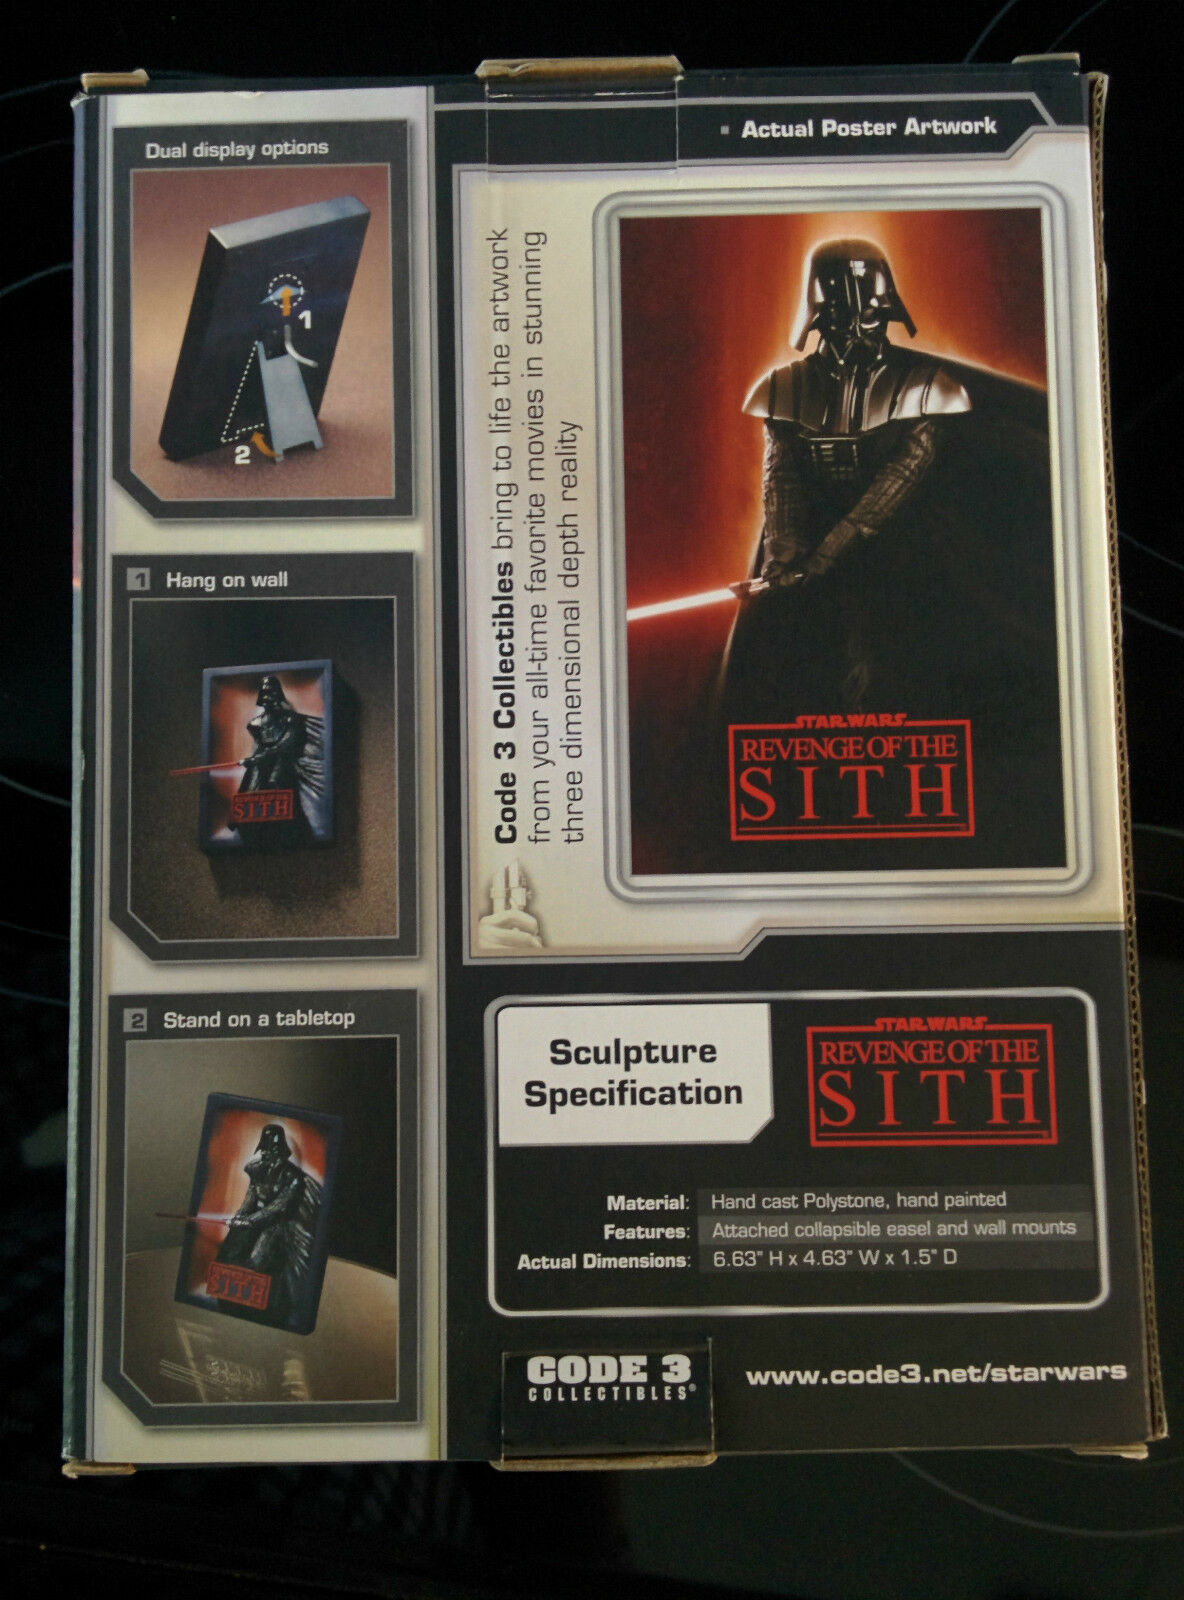 Star Wars Revenge Of The Sith - Code 3 Collectibles & - Ltd Edition (Boxed & Collectibles Mint) 3bf475